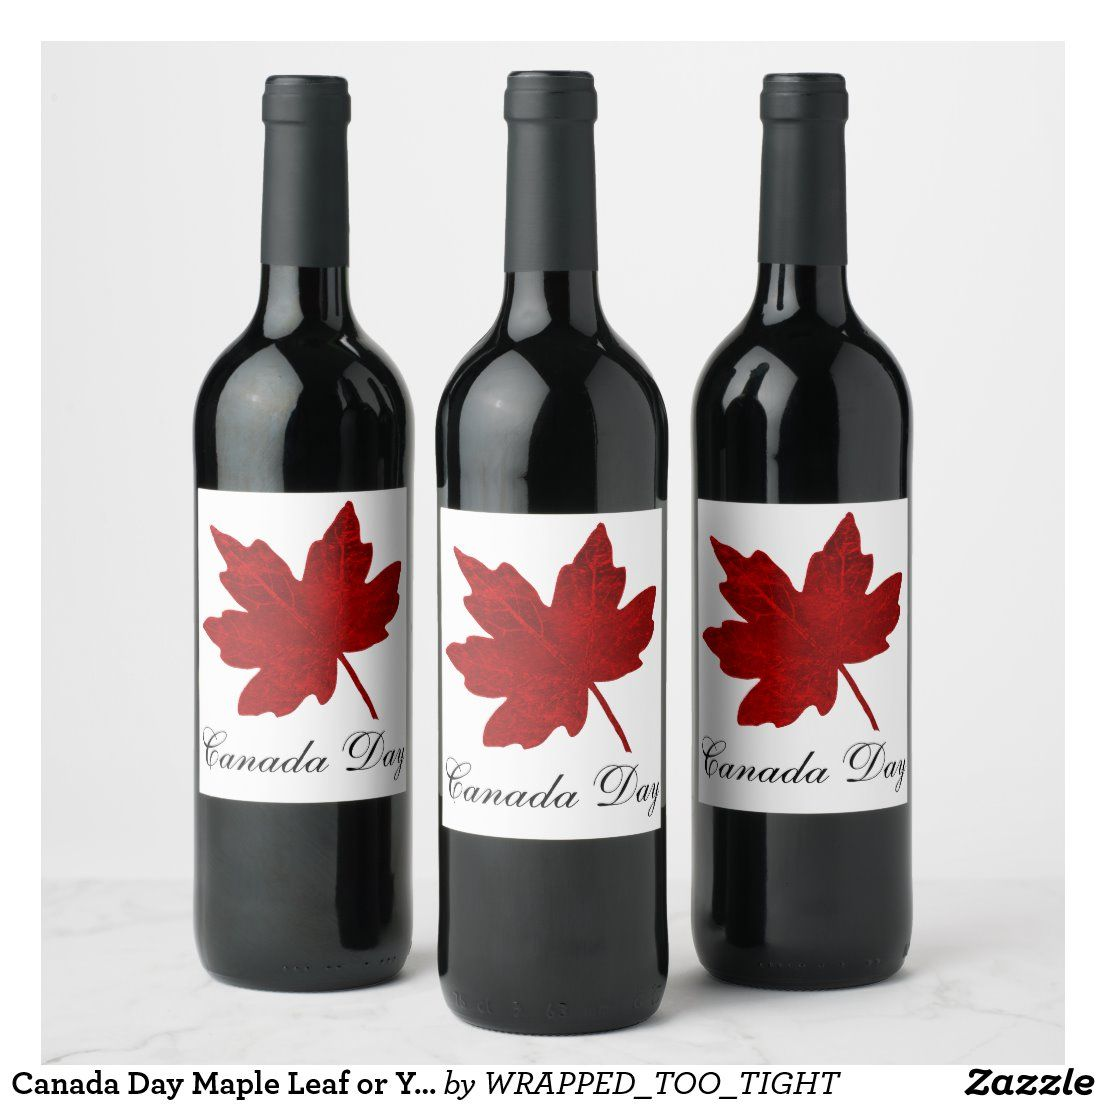 Canada Day Maple Leaf Or Your Message Wine Label Zazzle Com In 2020 Wine And Beer Wine Label Wine